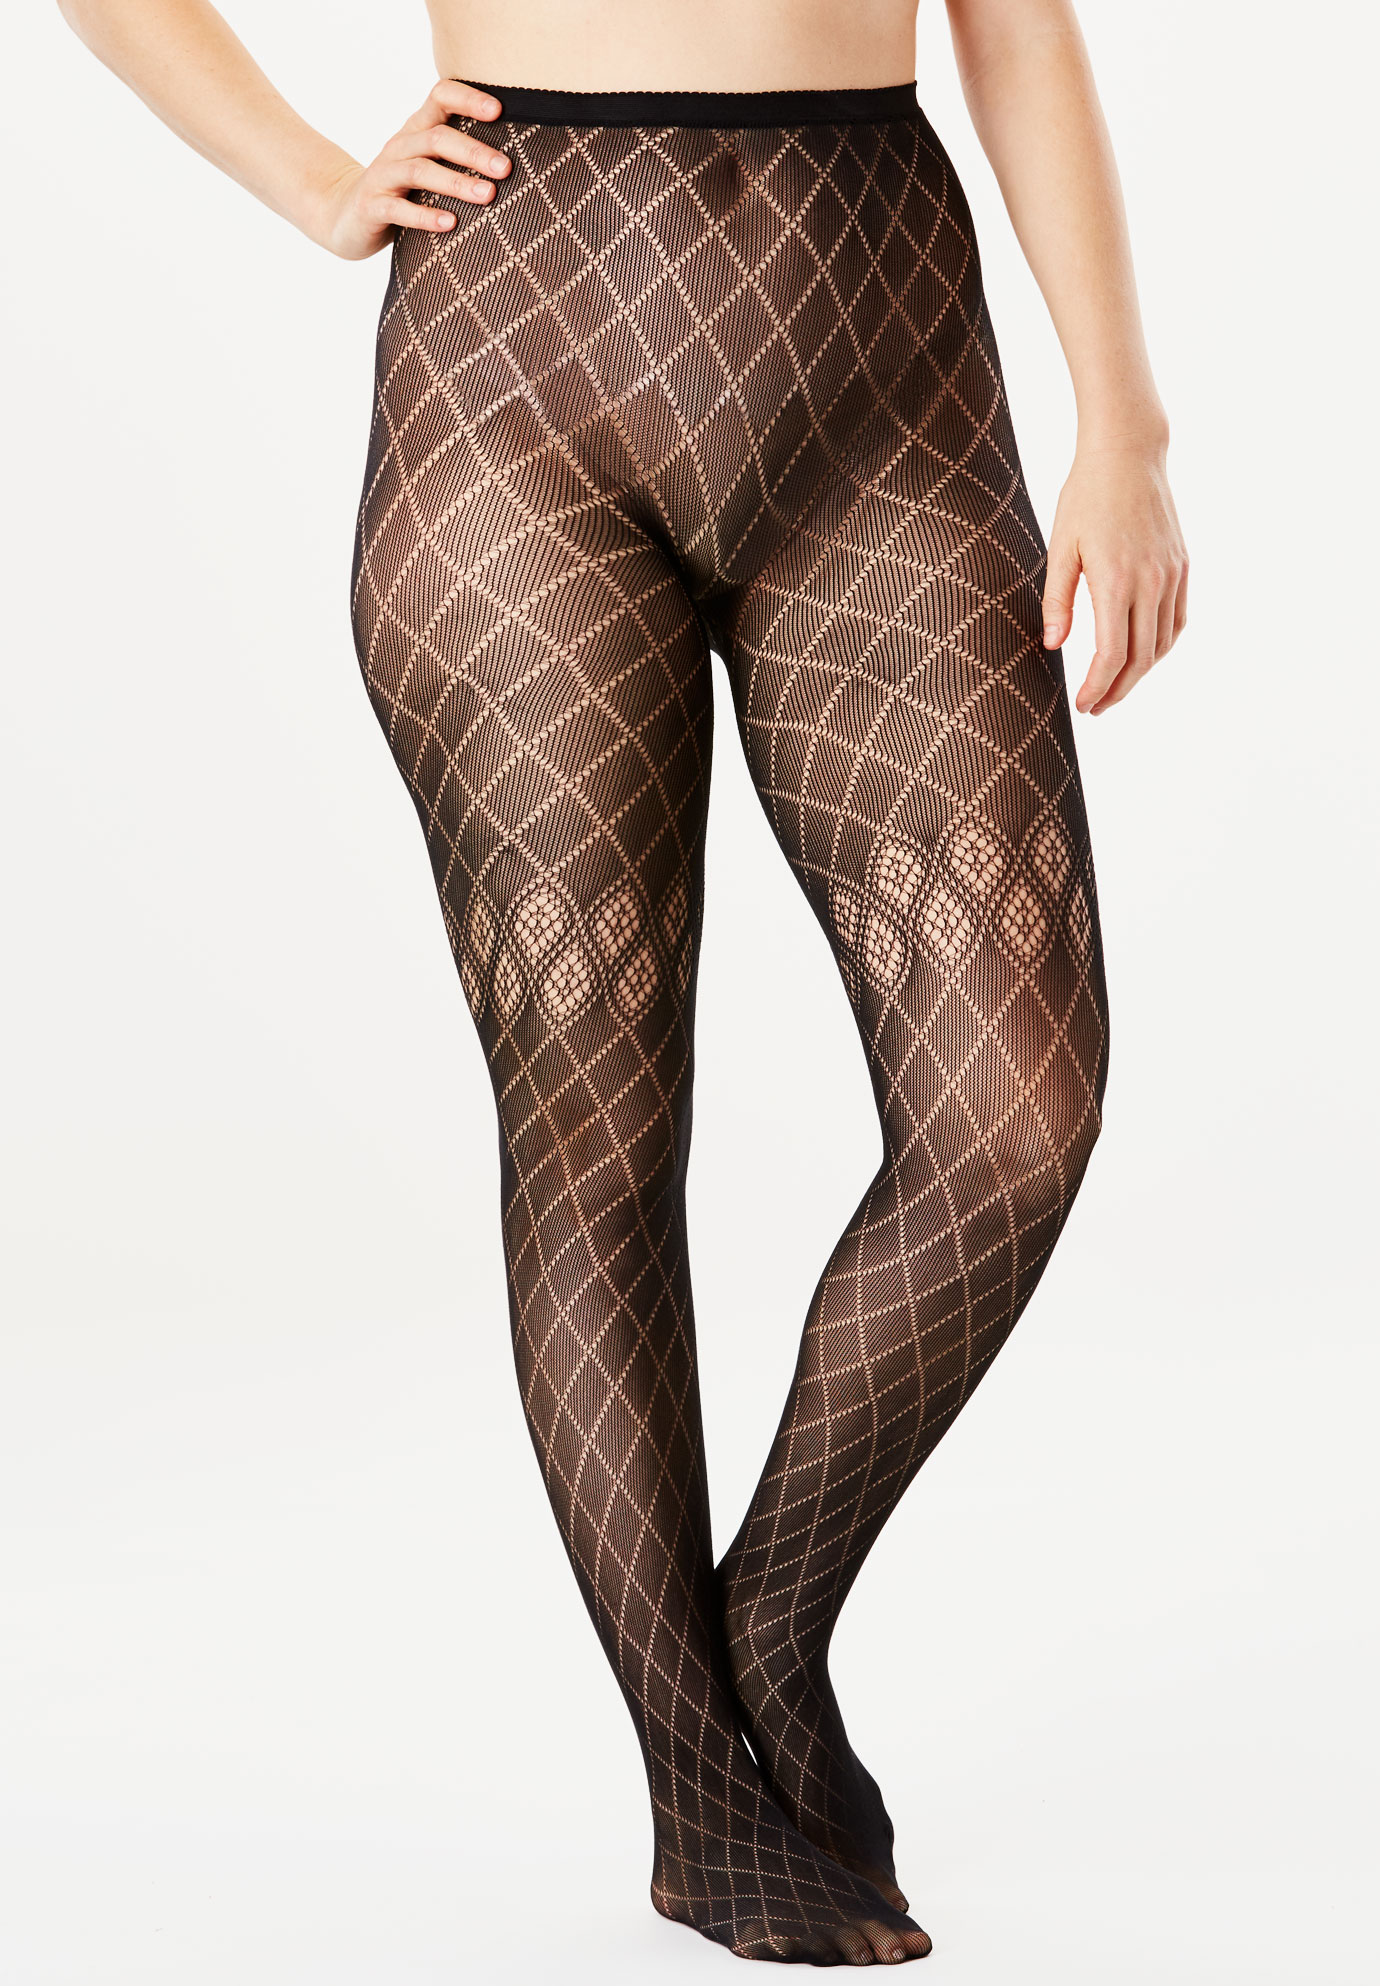 6e1f38603580d 2-Pack Patterned Tights| Plus Size Hosiery & Socks | Jessica London